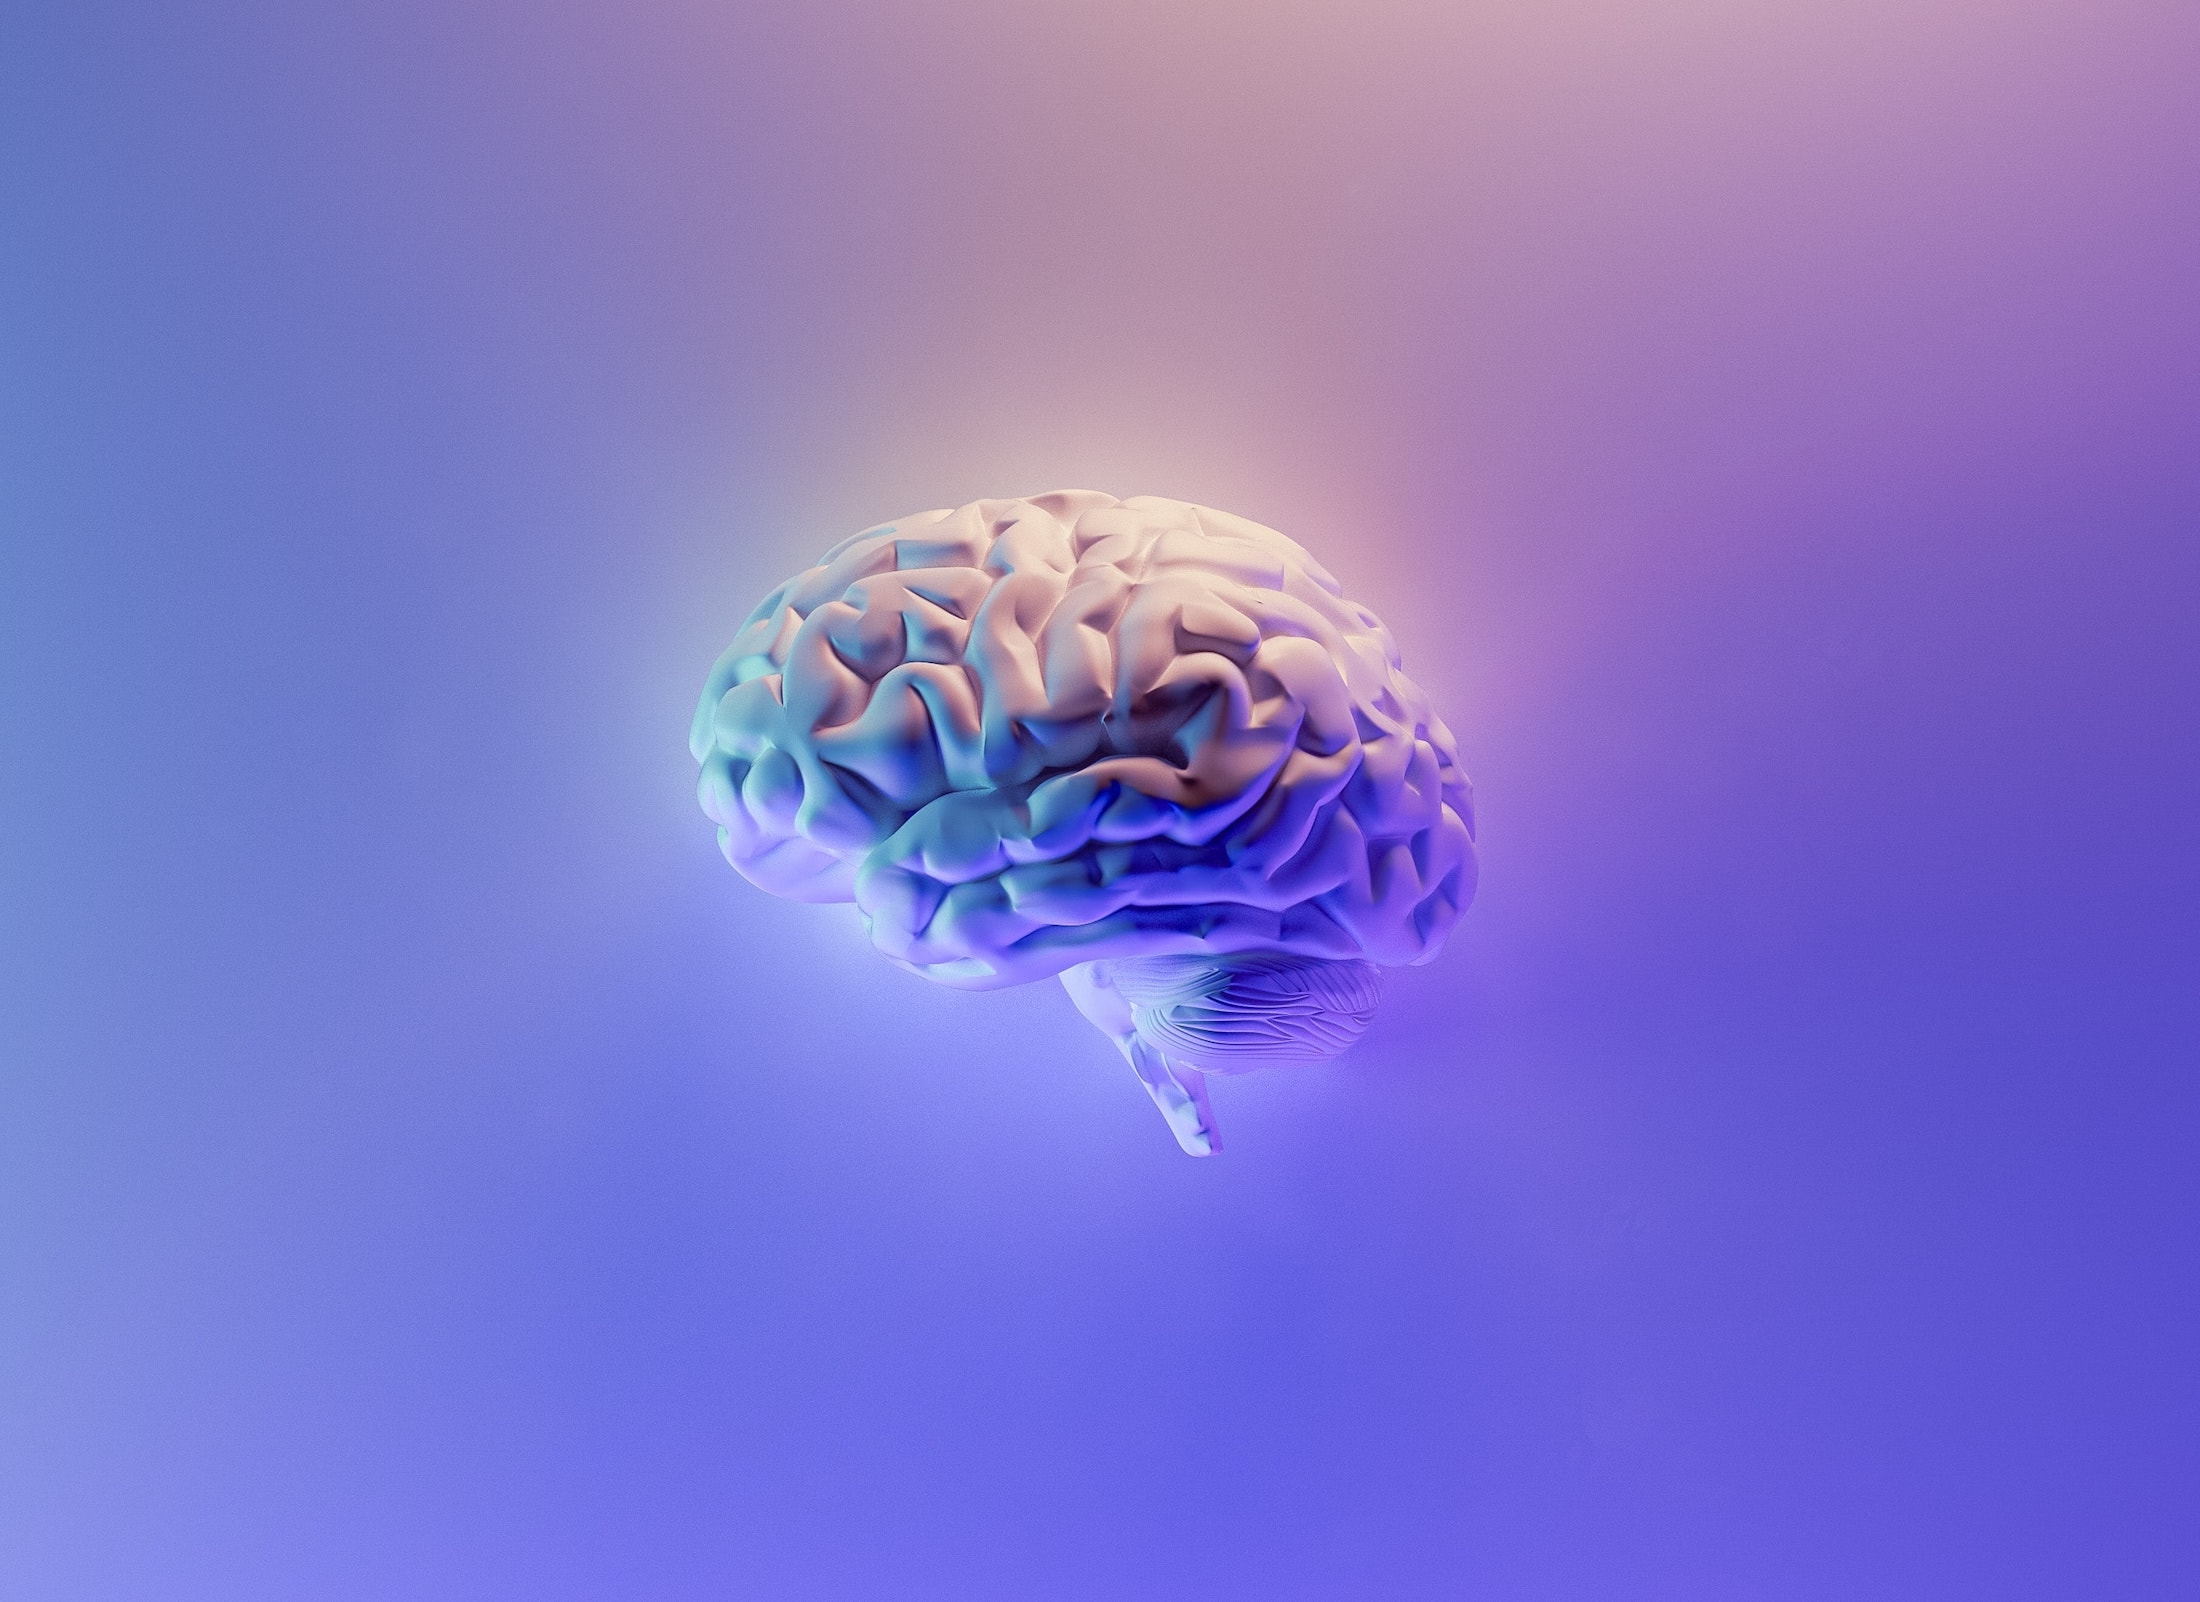 Brain on colorful background.